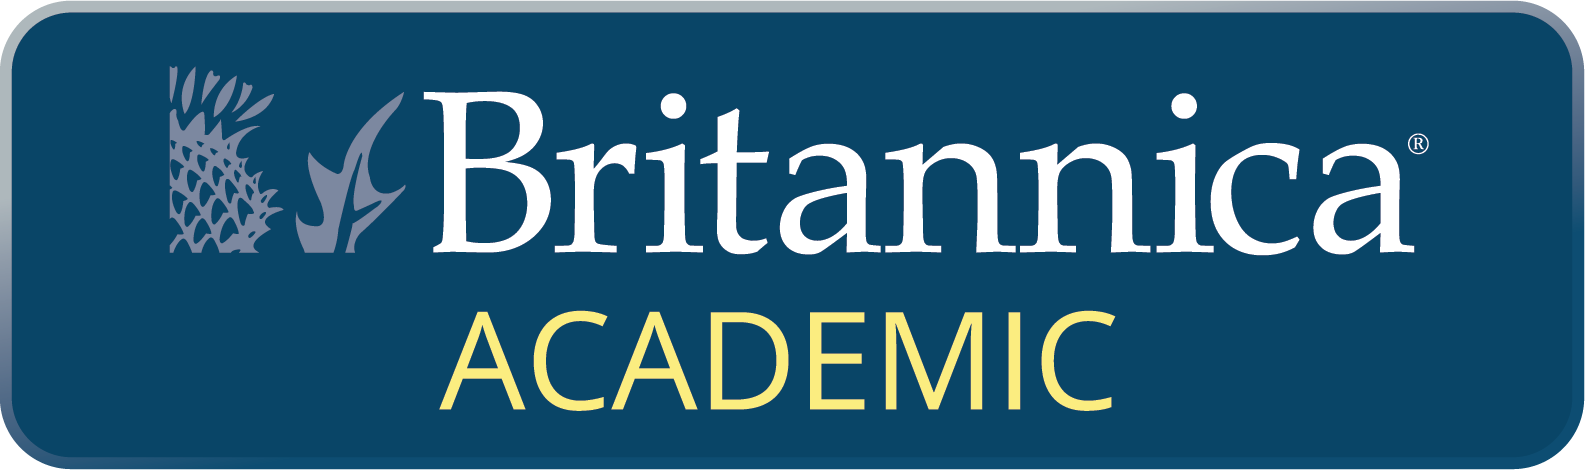 Britannica Academic button